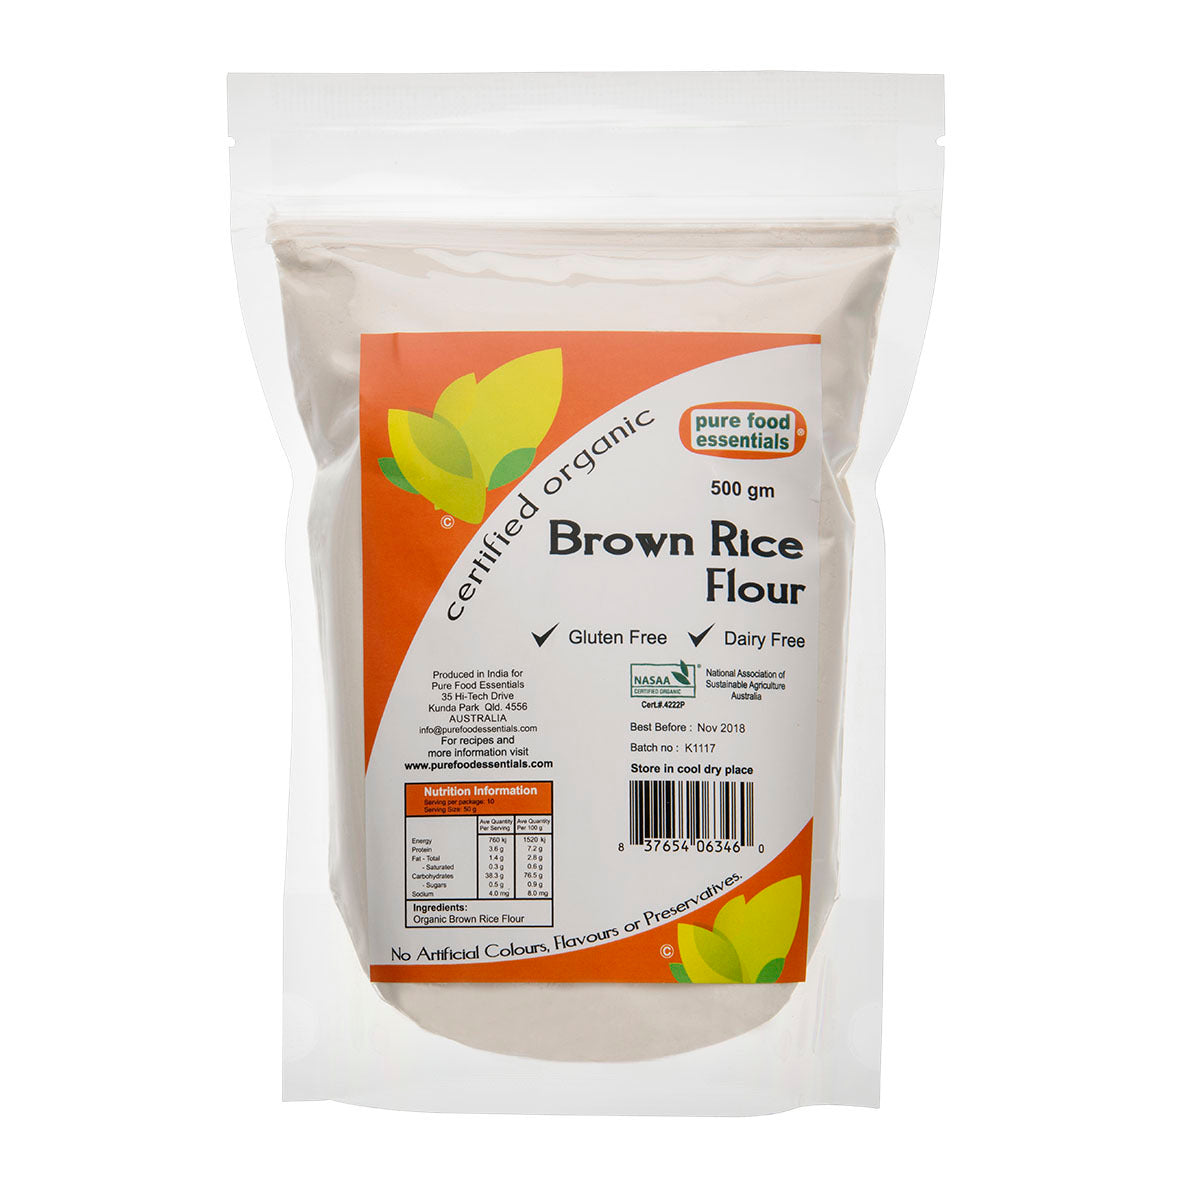 Pure Food Essentials Organic Brown Rice Flour   500g